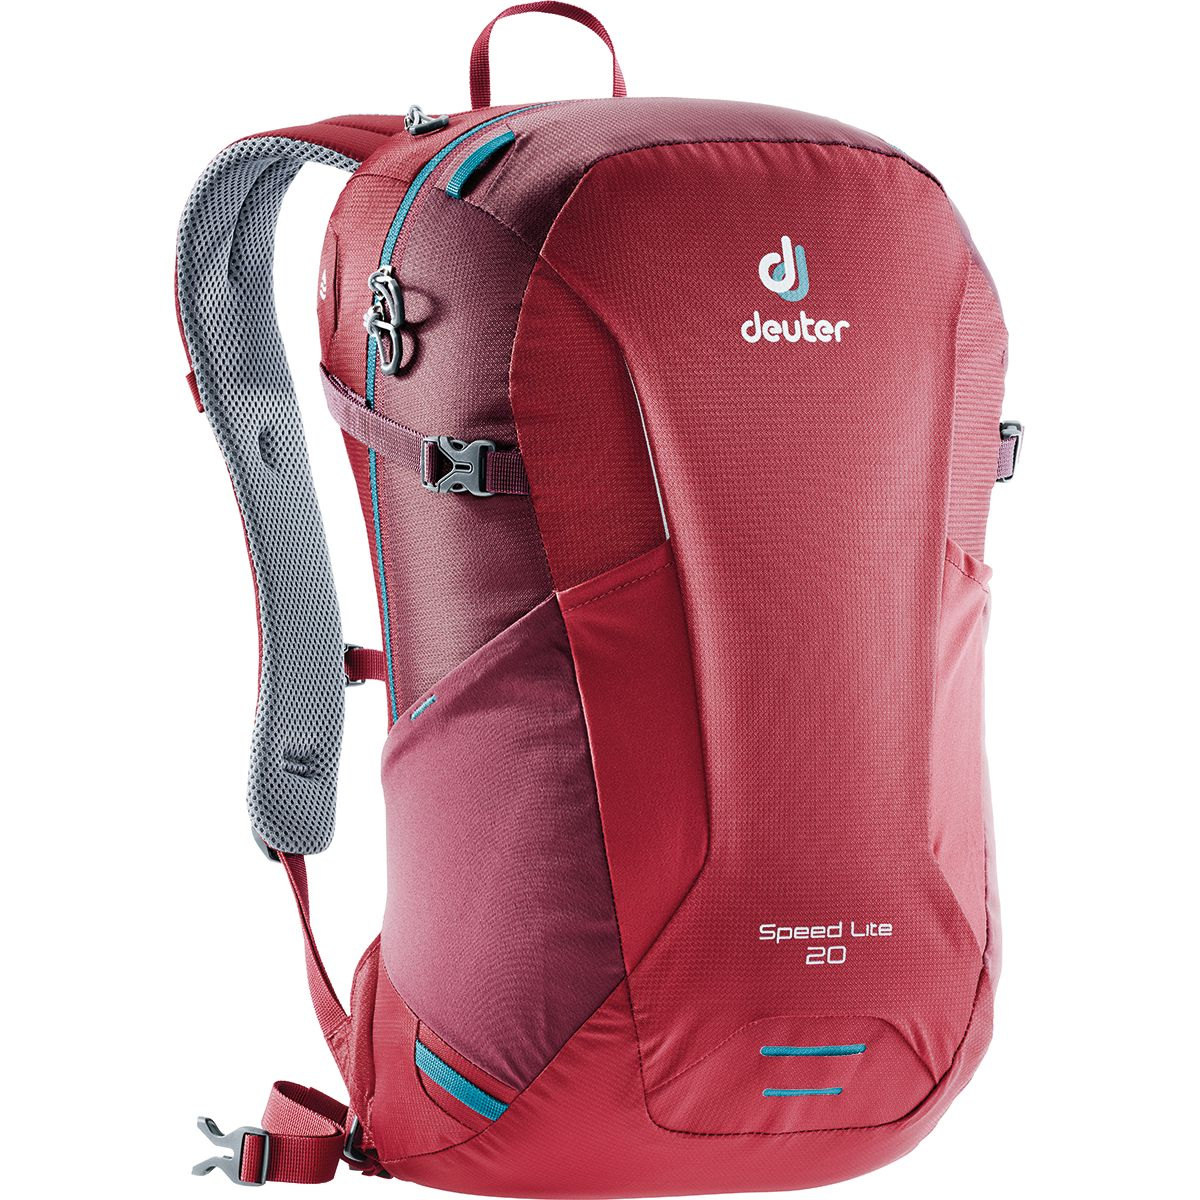 Image of Deuter Speed Lite 20 Rucksack (Rot)